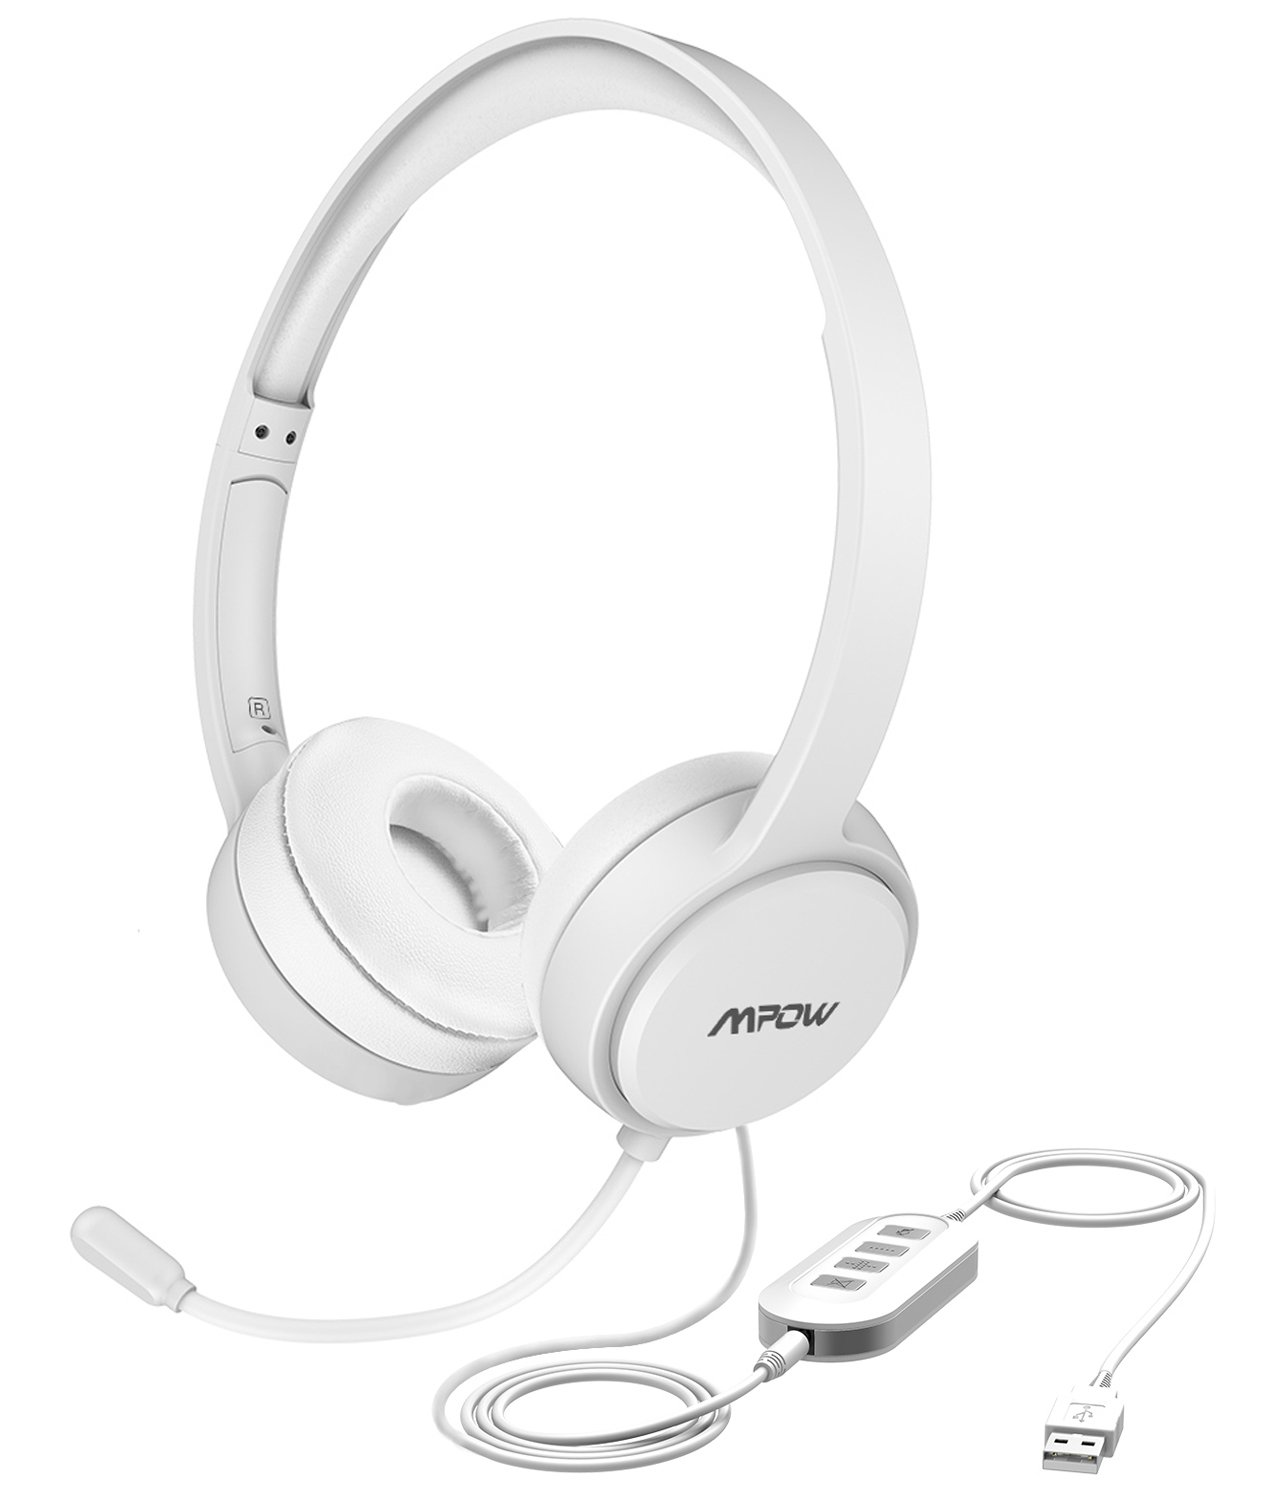 Mpow 071 USB Headset/ 3.5mm Computer Headset with Microphone Noise Cancelling, Lightweight PC Headset Wired Headphones, Business Headset for Skype, Webinar, Phone, Call Center